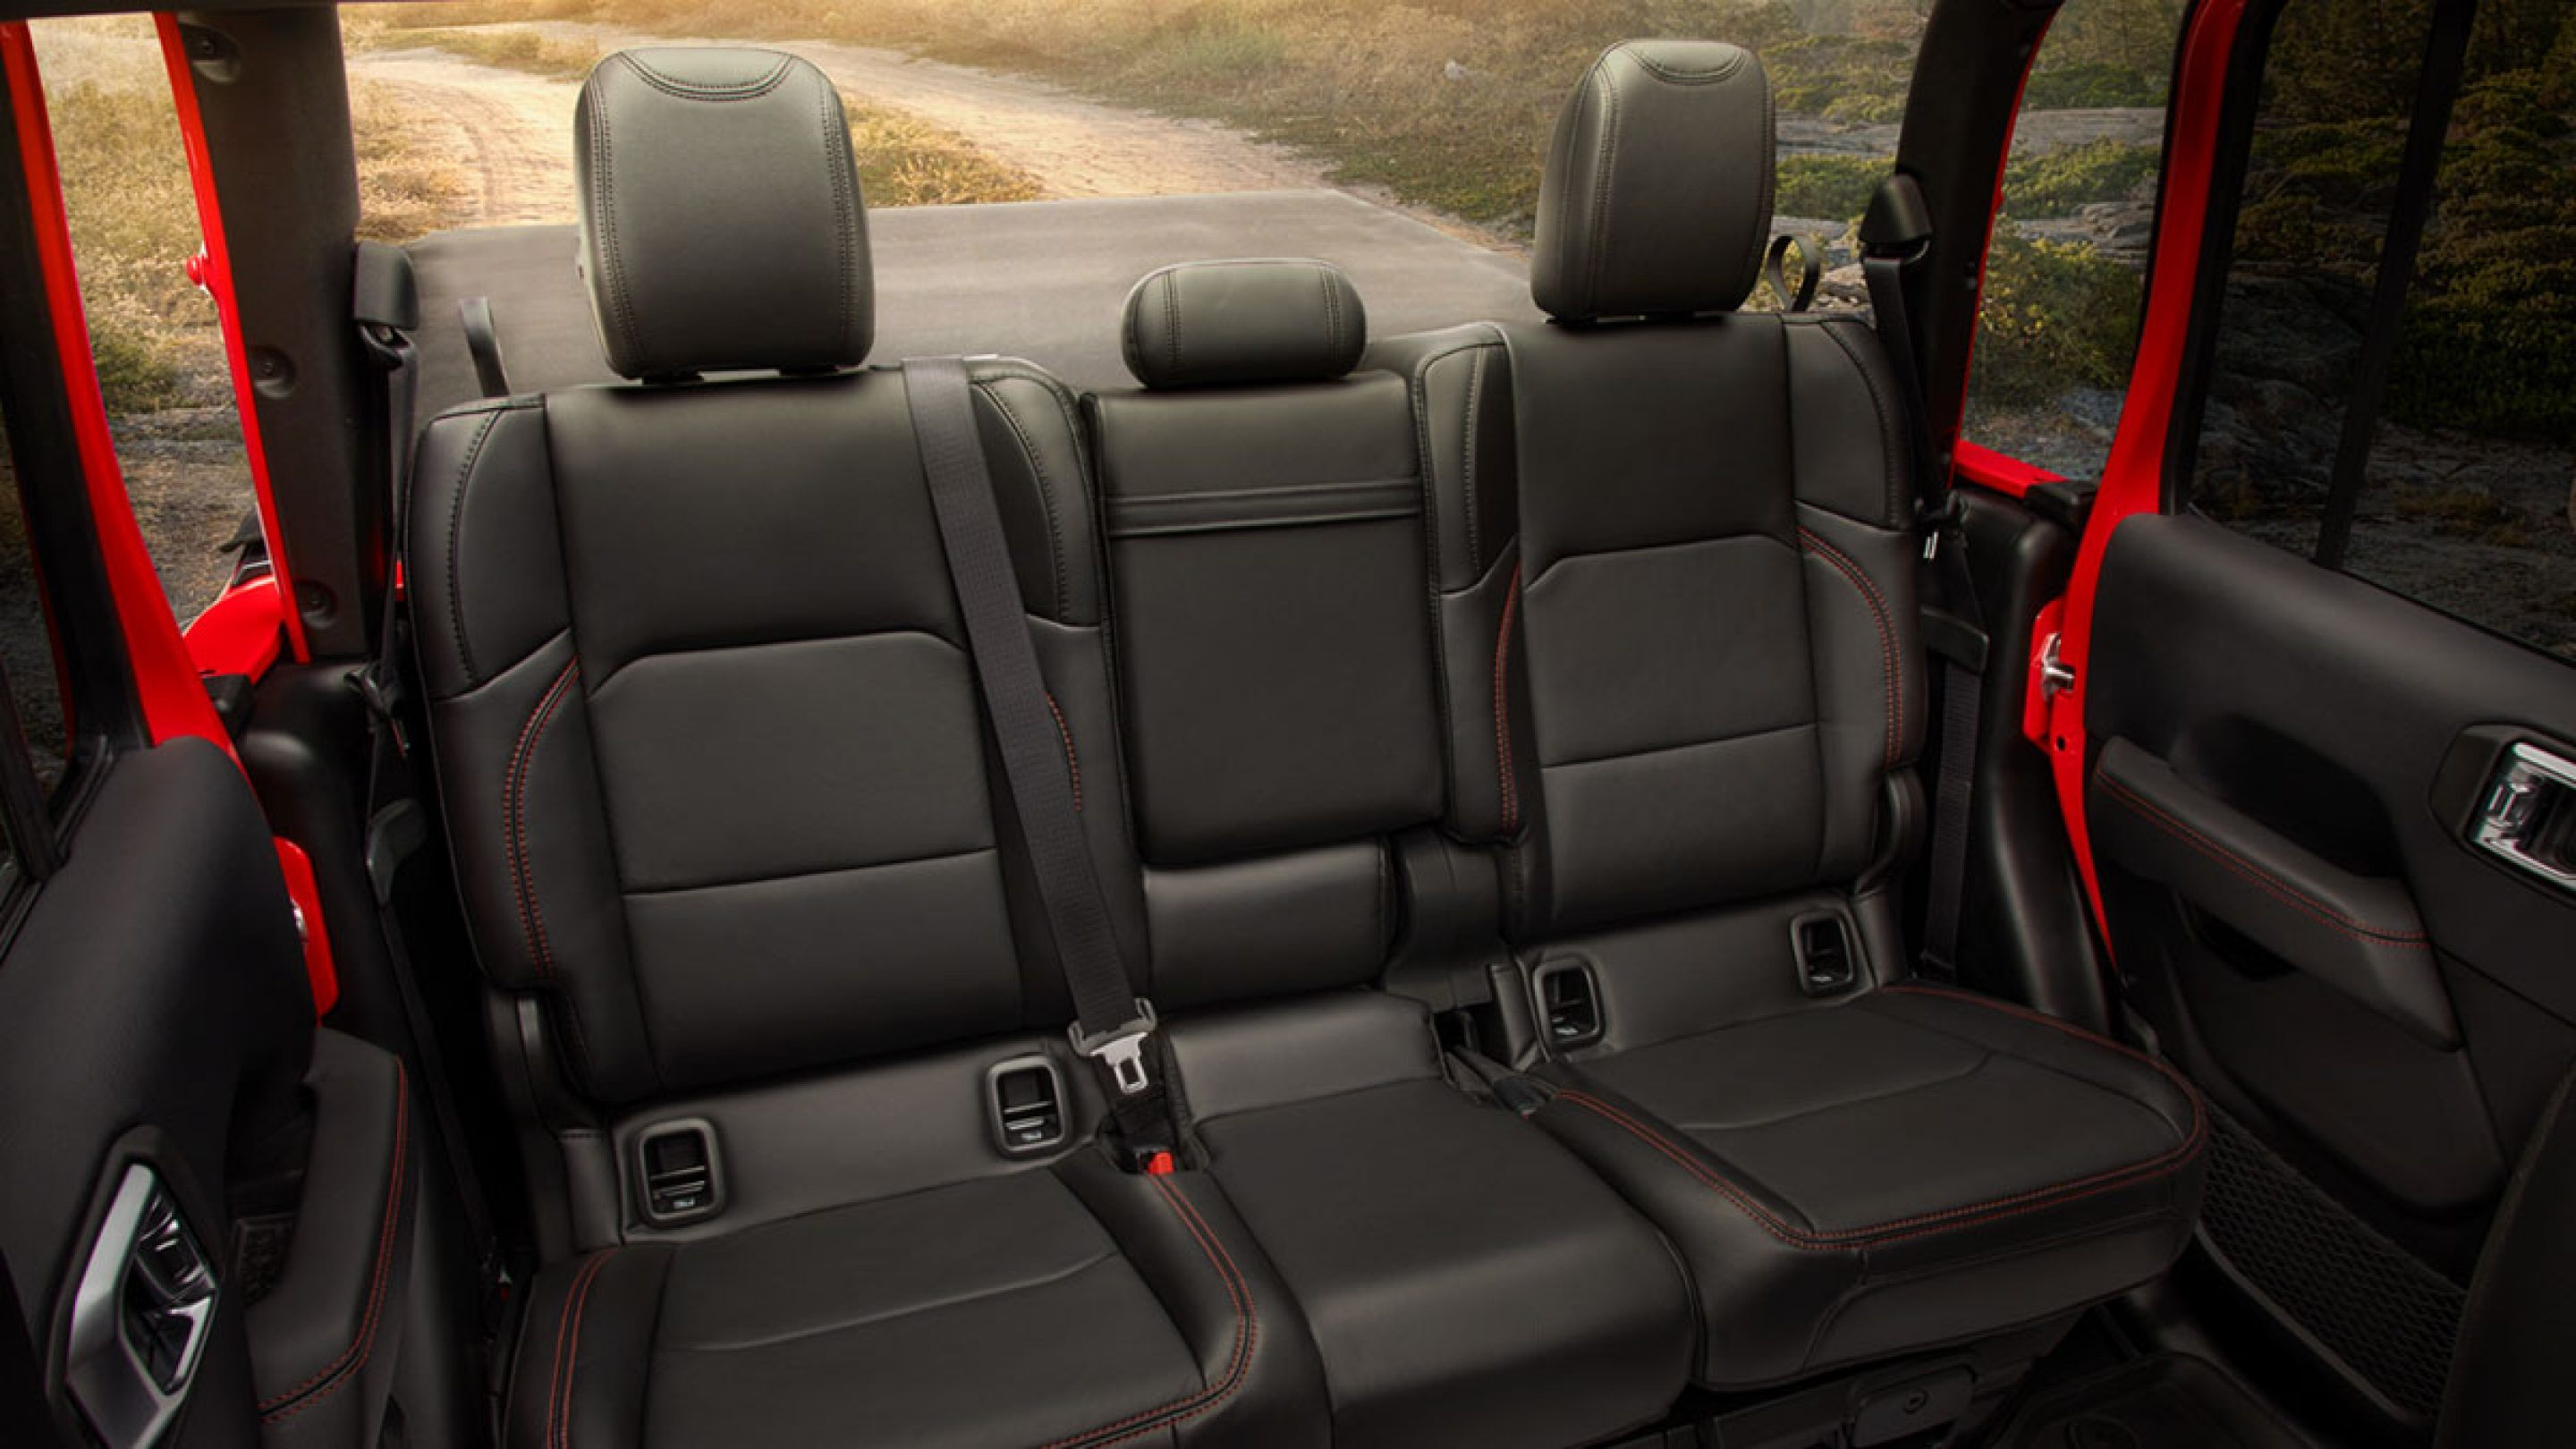 Rear Seats in the 2020 Jeep Gladiator